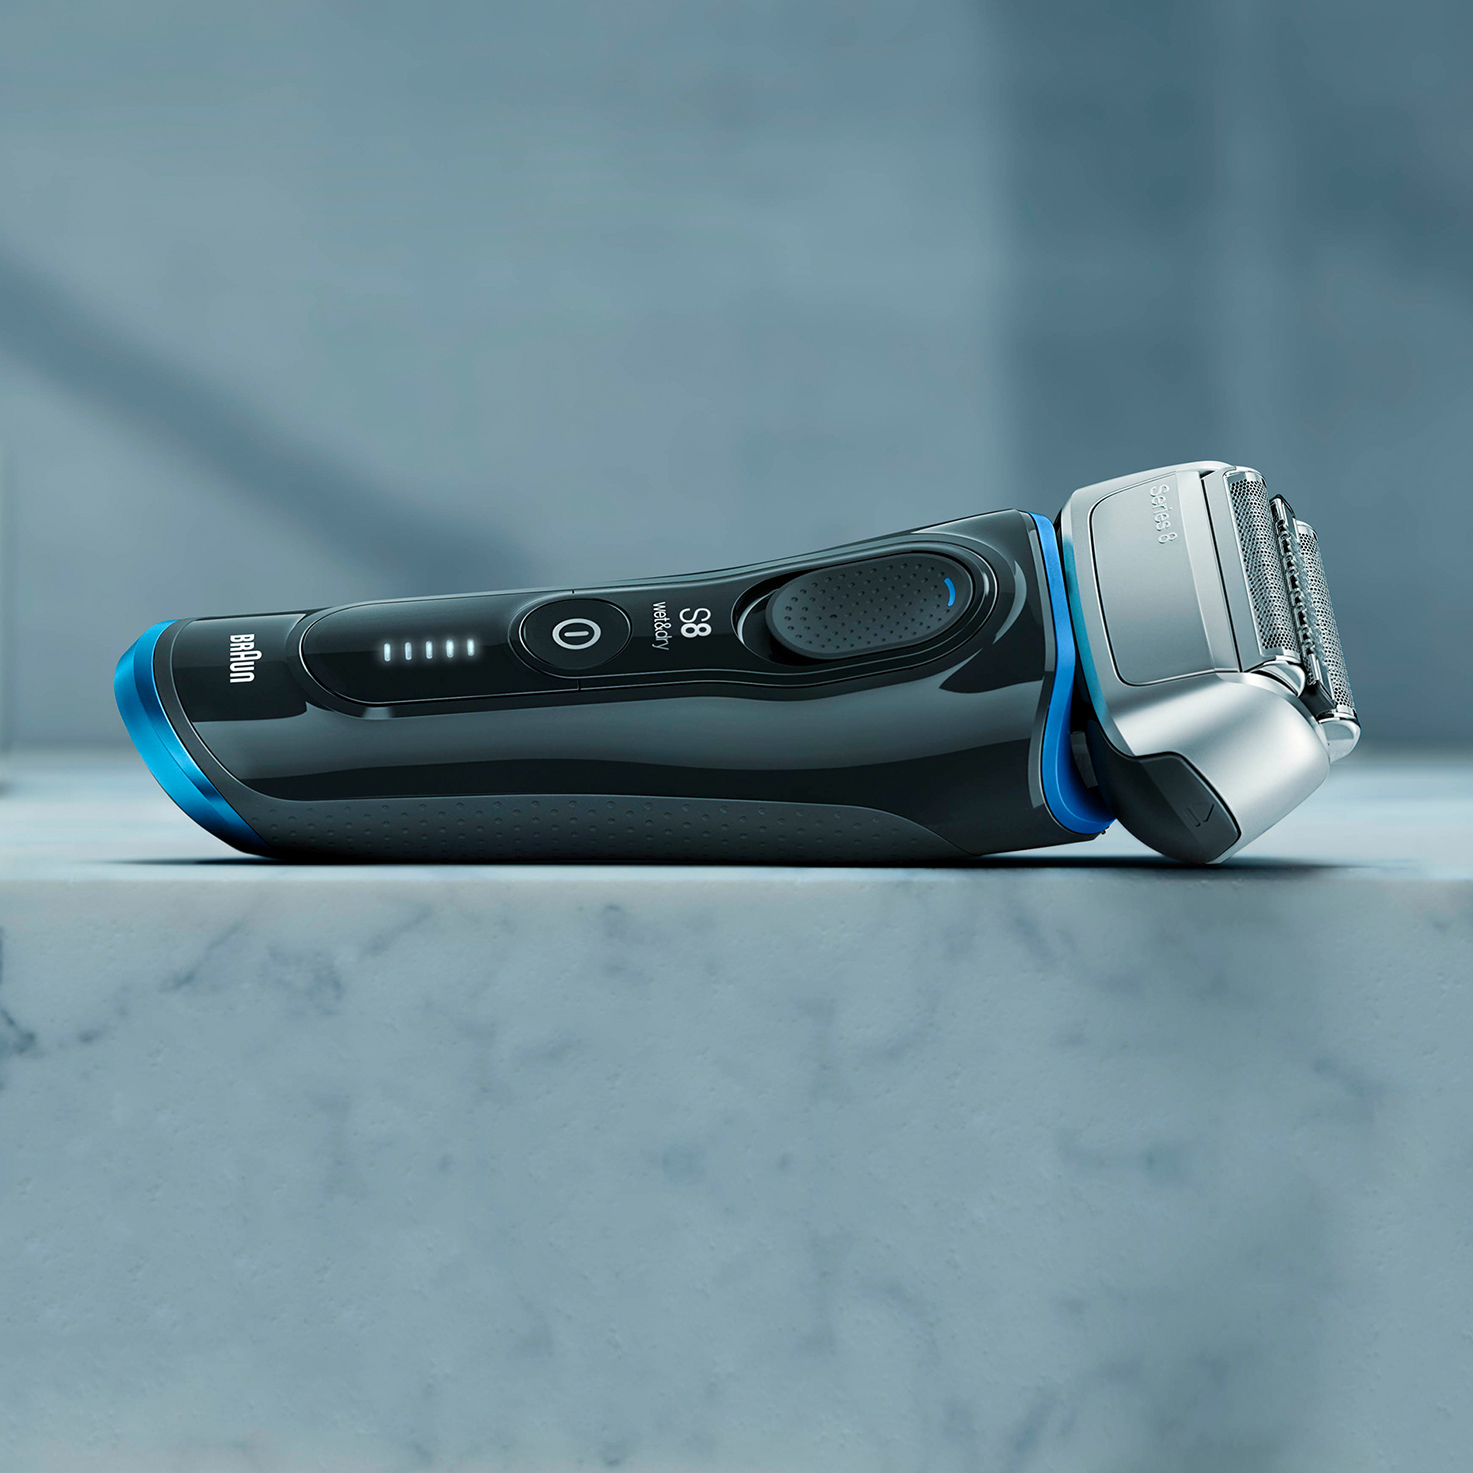 Series 8 8325s shaver